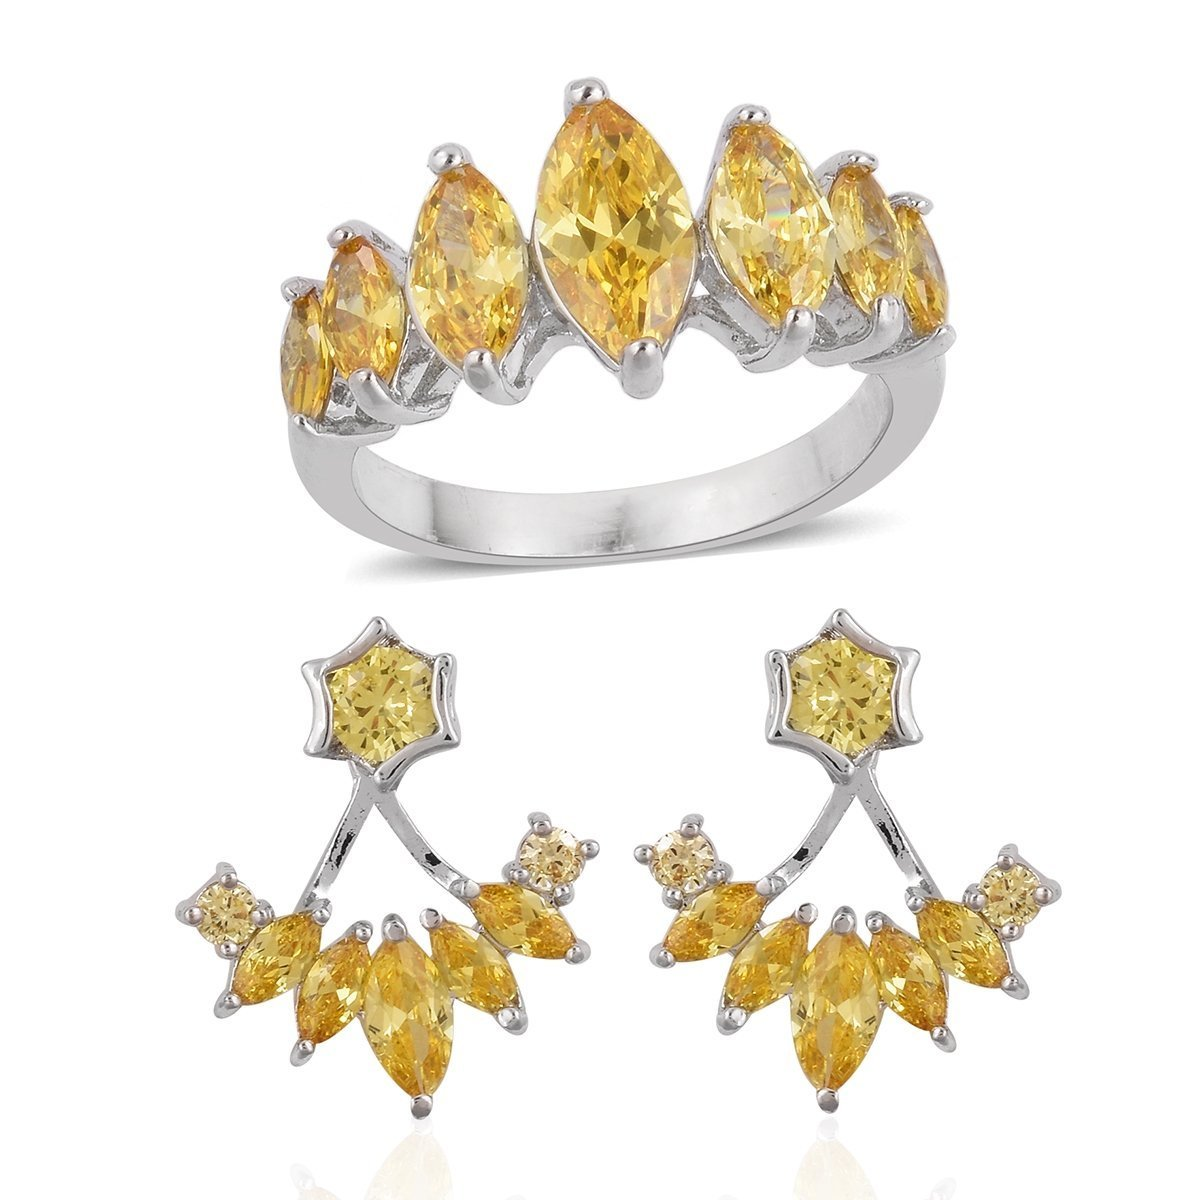 Round Yellow Cubic Zirconia Silvertone Ring Size 10 Earring Set for Women Cttw 2.9 by Shop LC